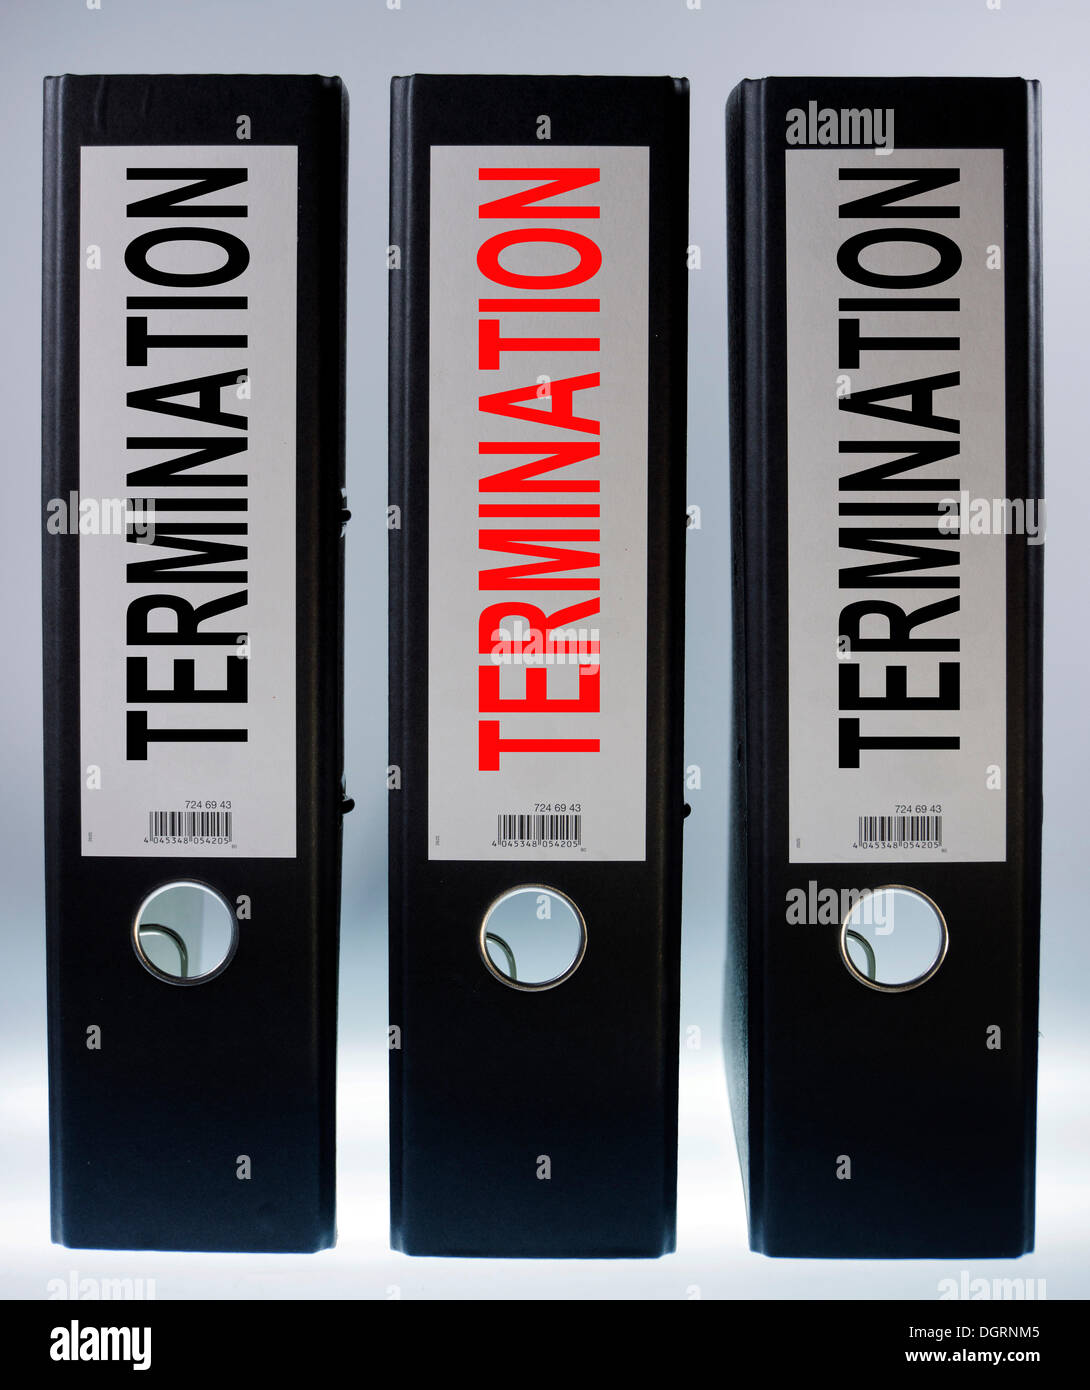 Three ring binders labelled 'TERMINATION' - Stock Image